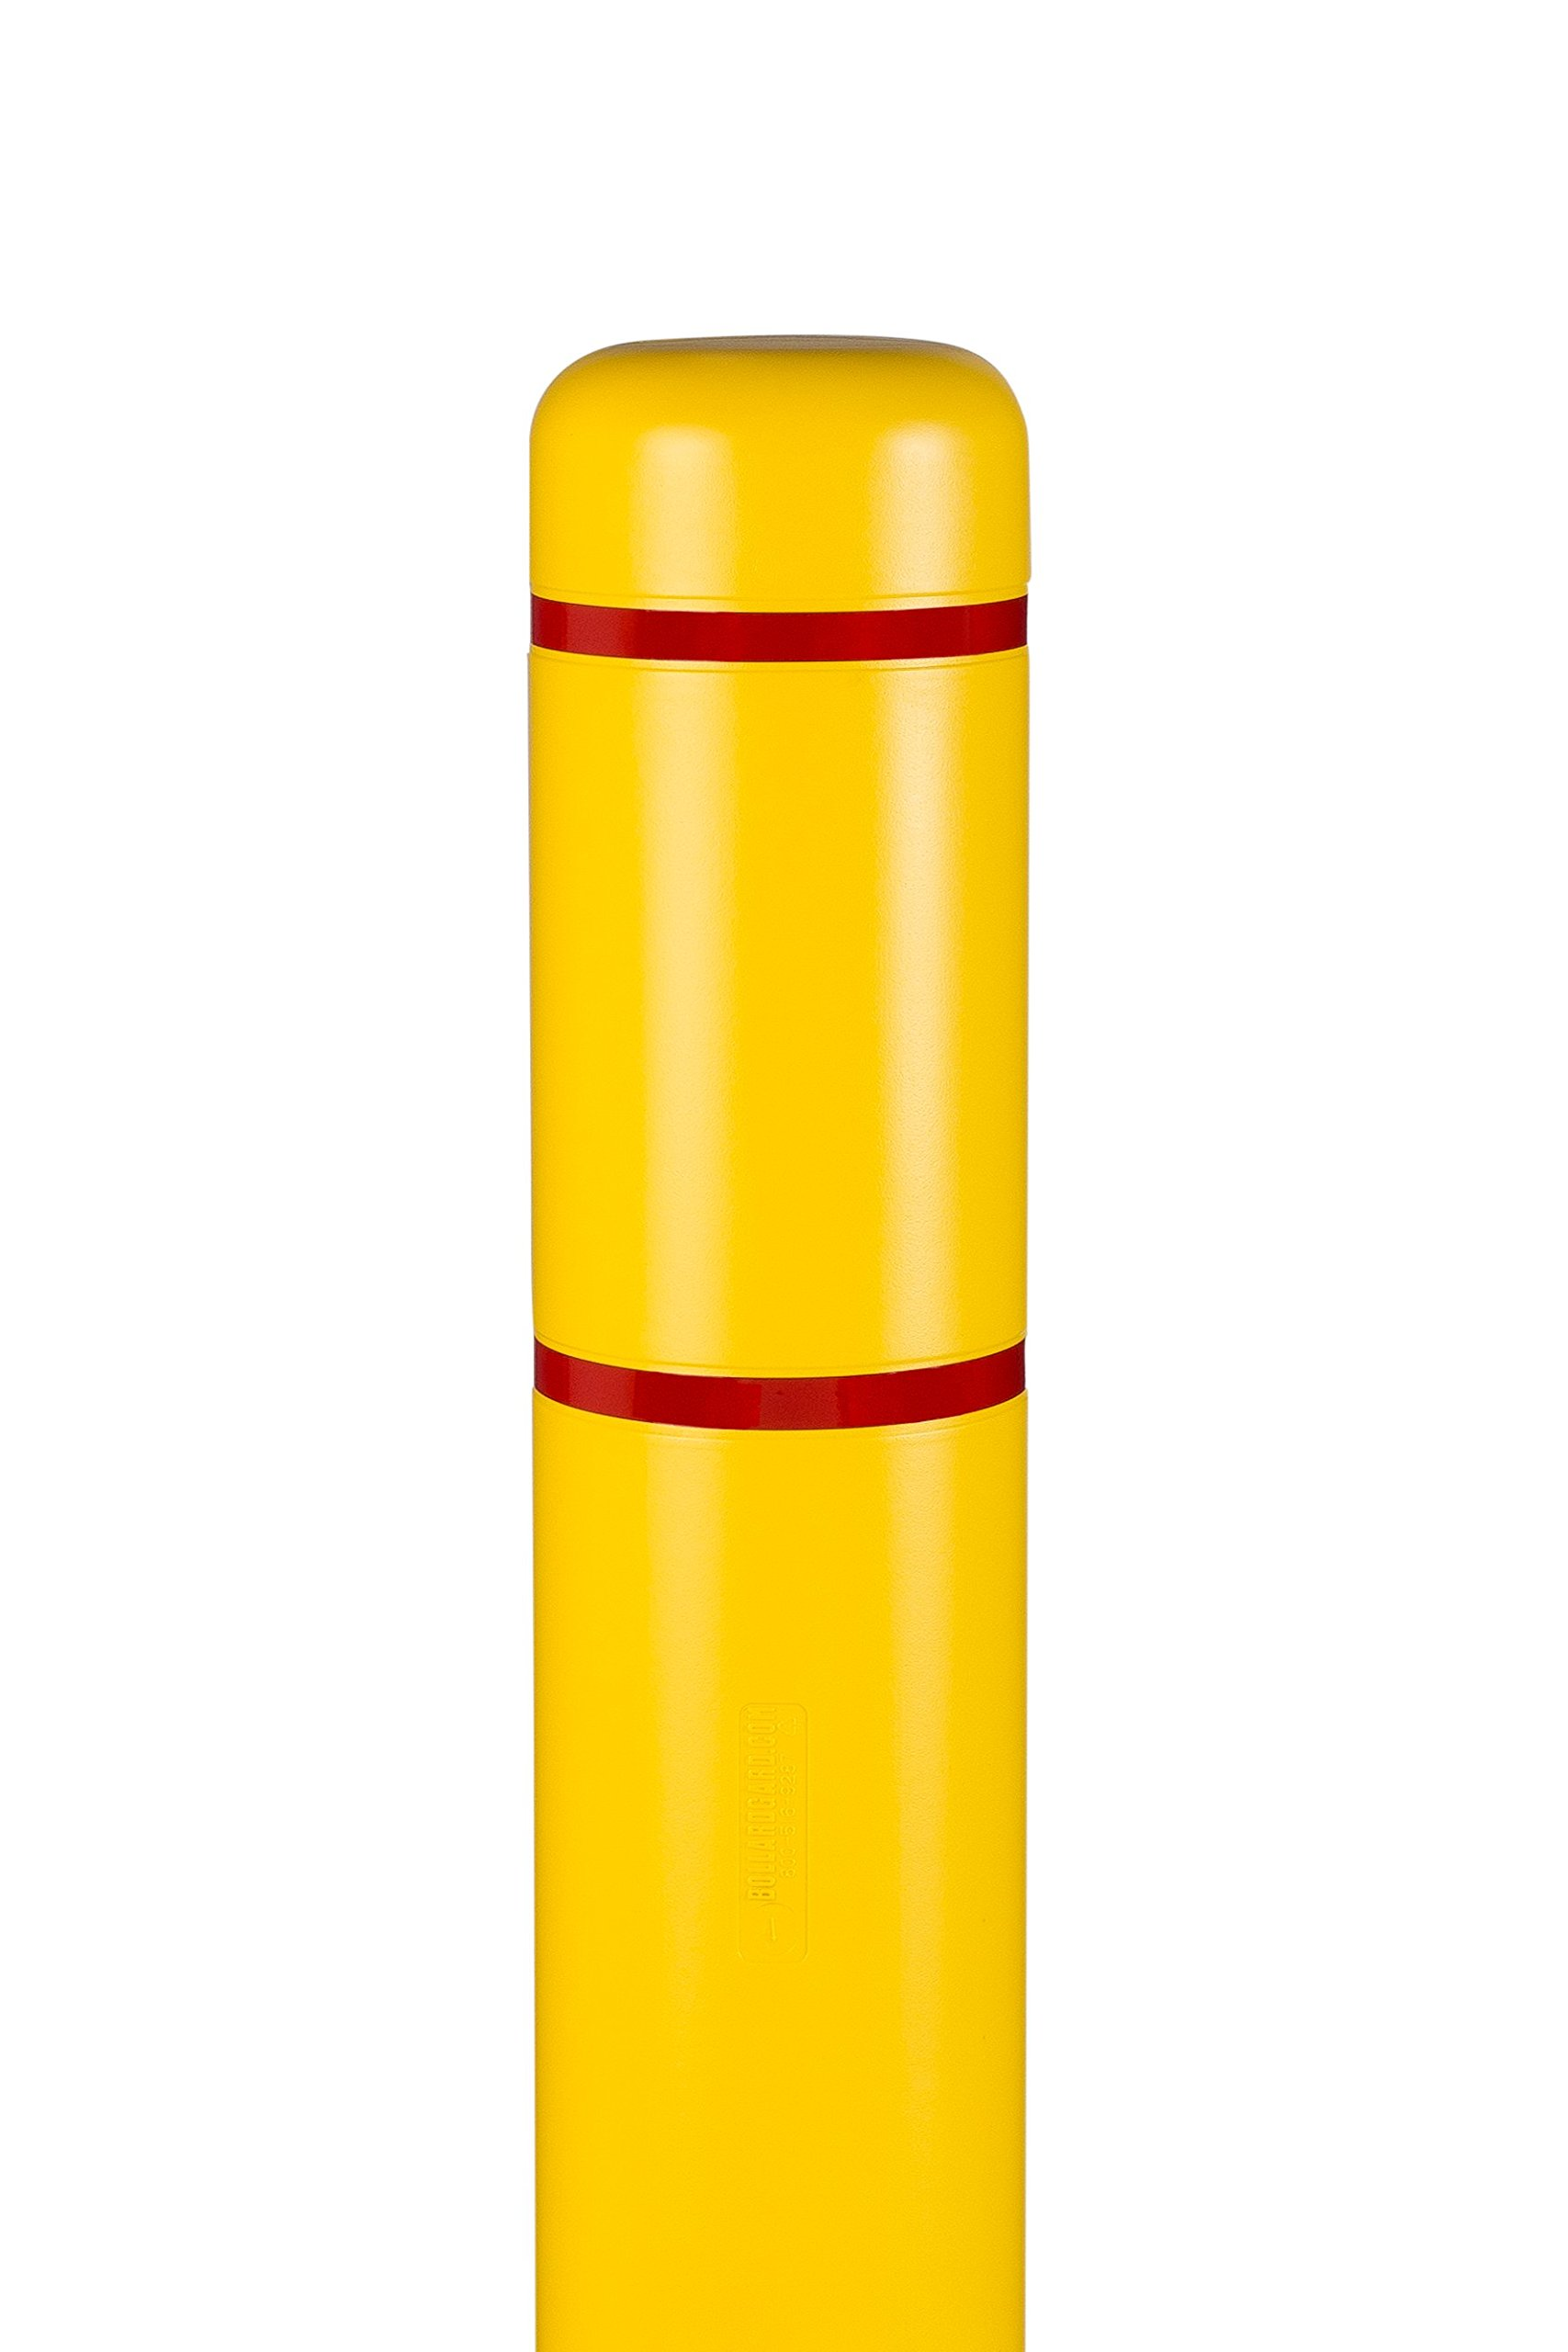 7'' x 52'' (7.1'' ID) BollardGard Bollard Cover Yellow with Red Reflective by Innoplast